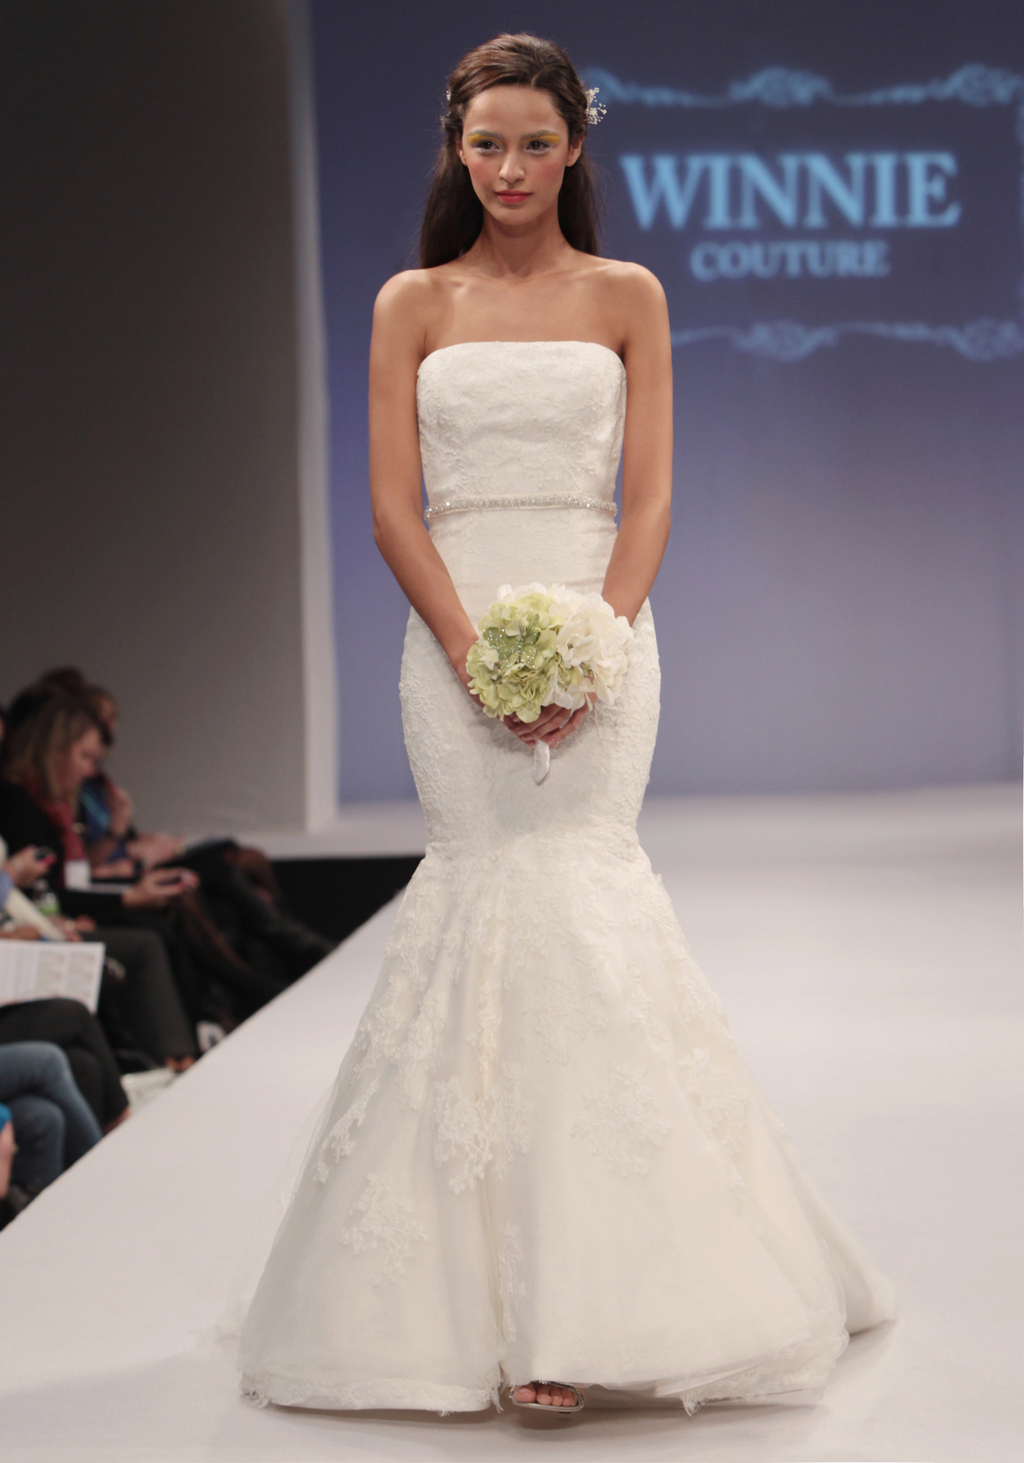 Winnie Couture Bridal Gown Spring 2013 Wedding Dress PAIGE